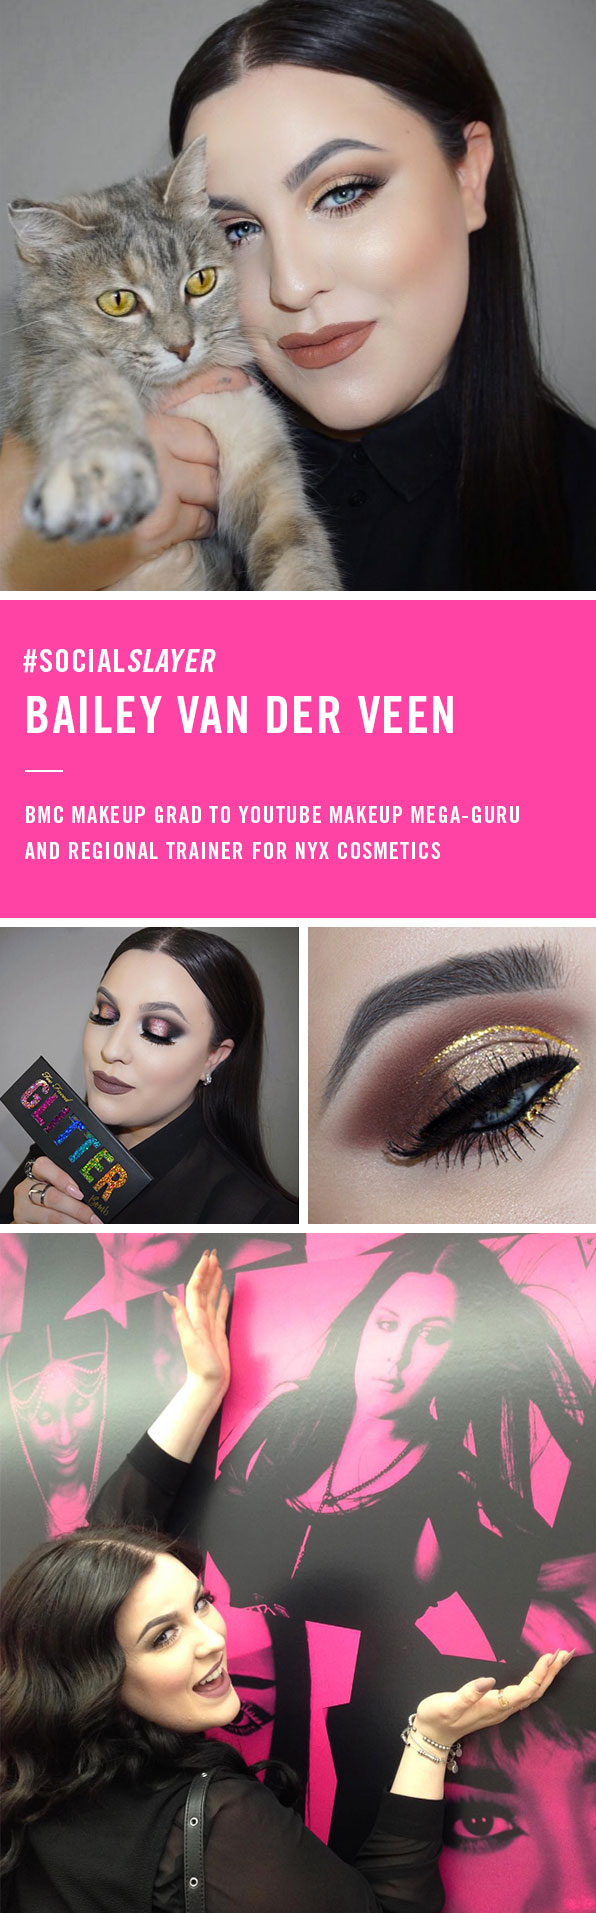 top-makeup-school-graduate-bailey-van-der-veen